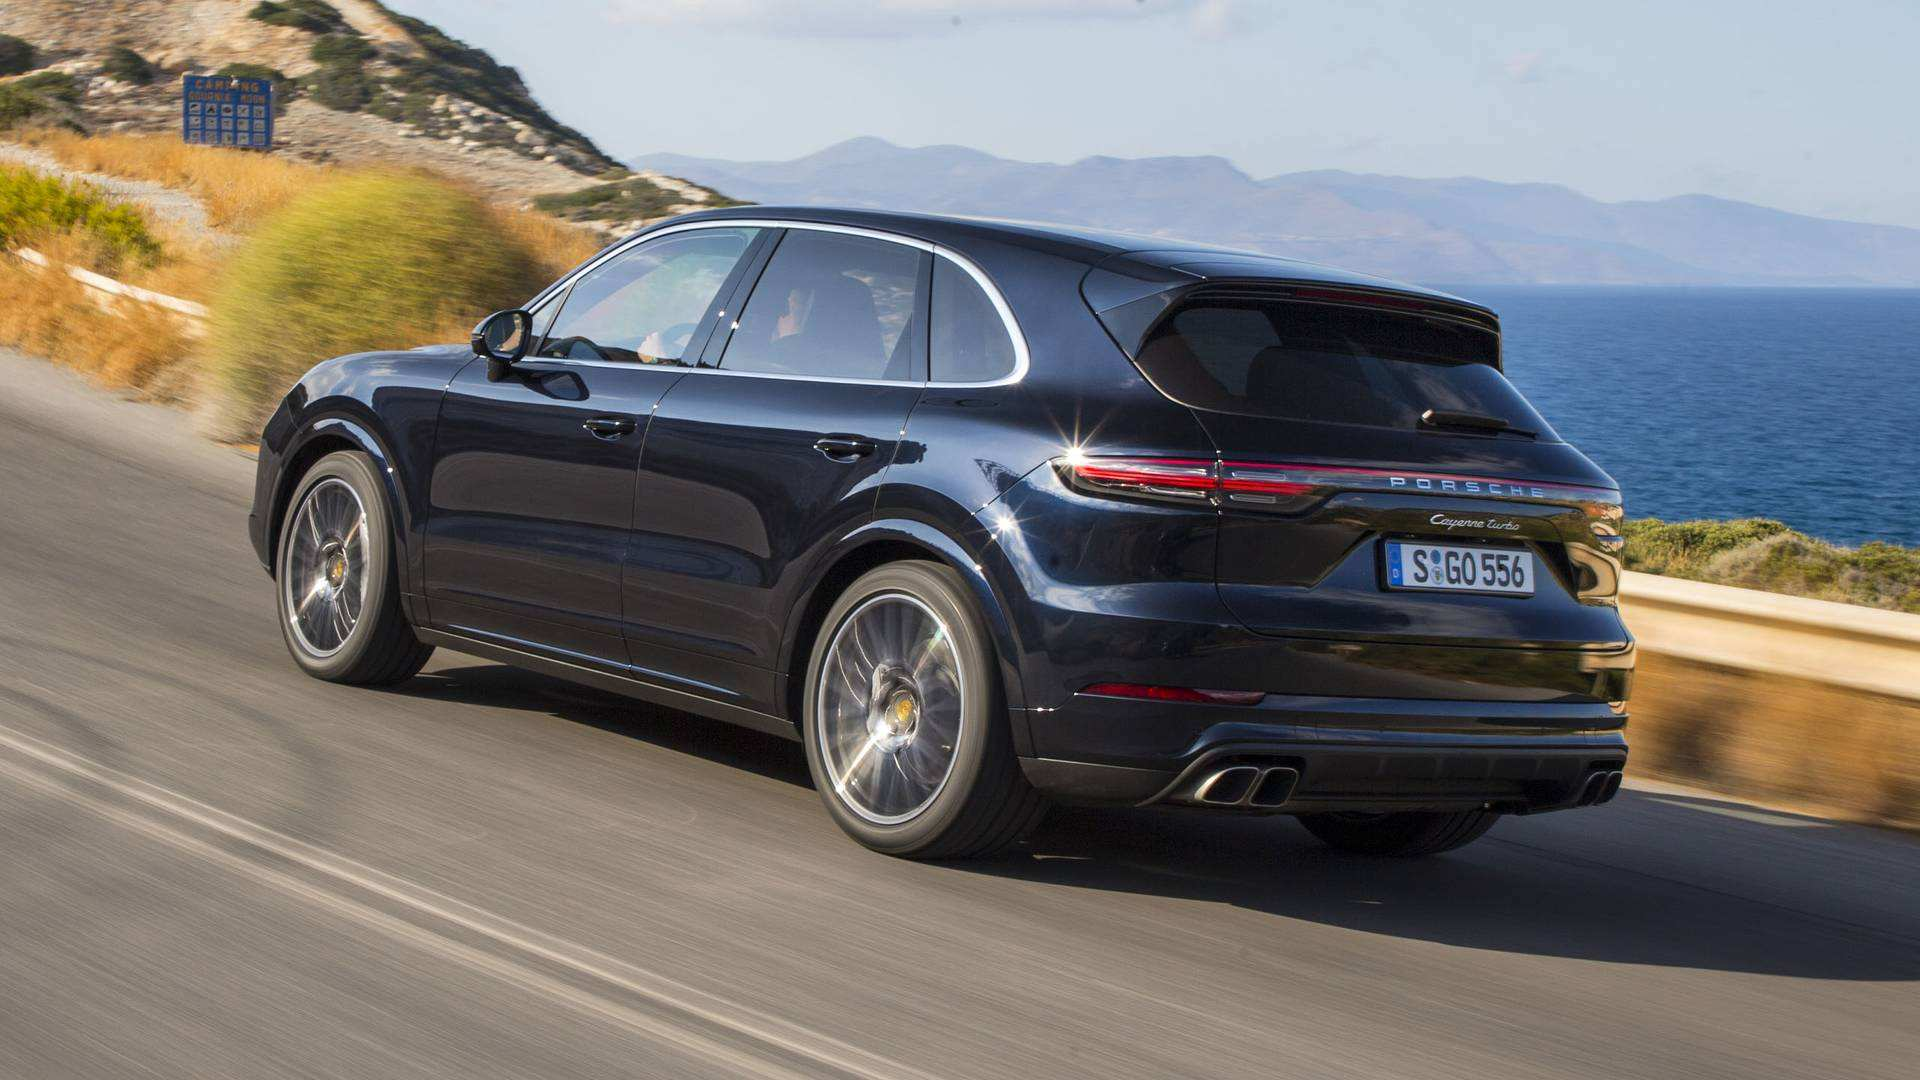 29 Best 2019 Porsche Cayenne Model Review And Release Date